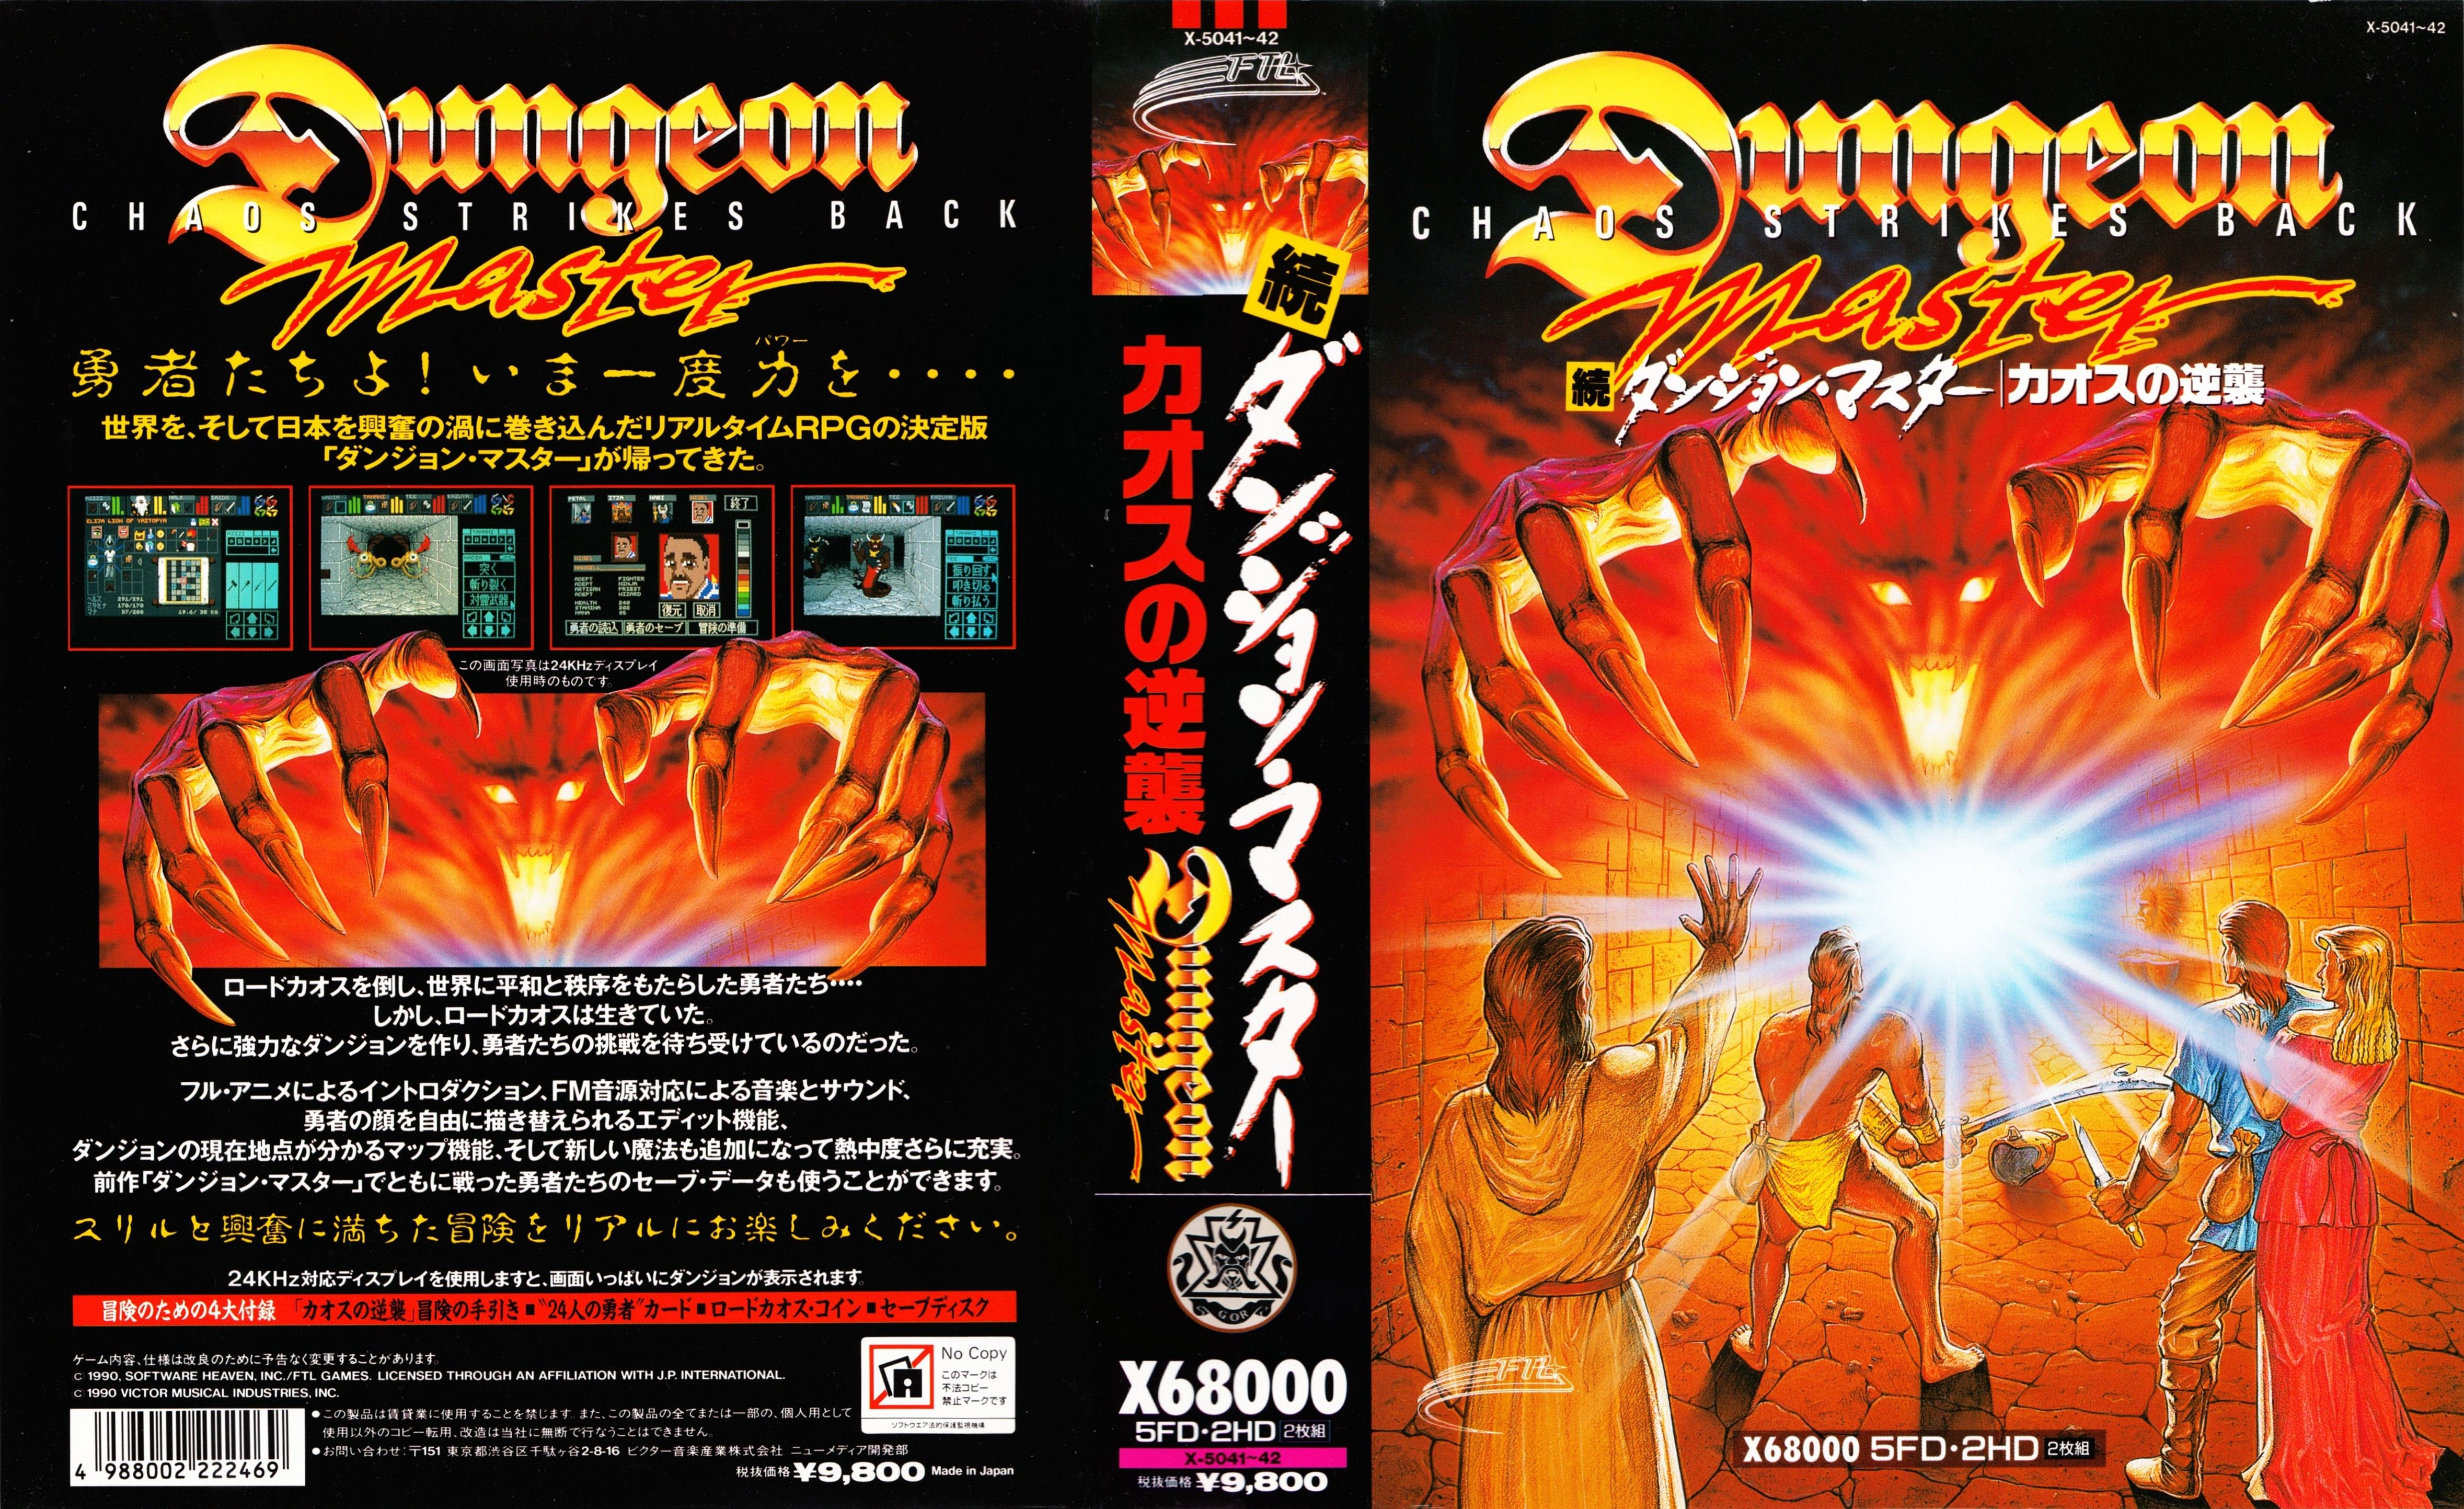 Game - Chaos Strikes Back - JP - X68000 - Cover - Front - Scan